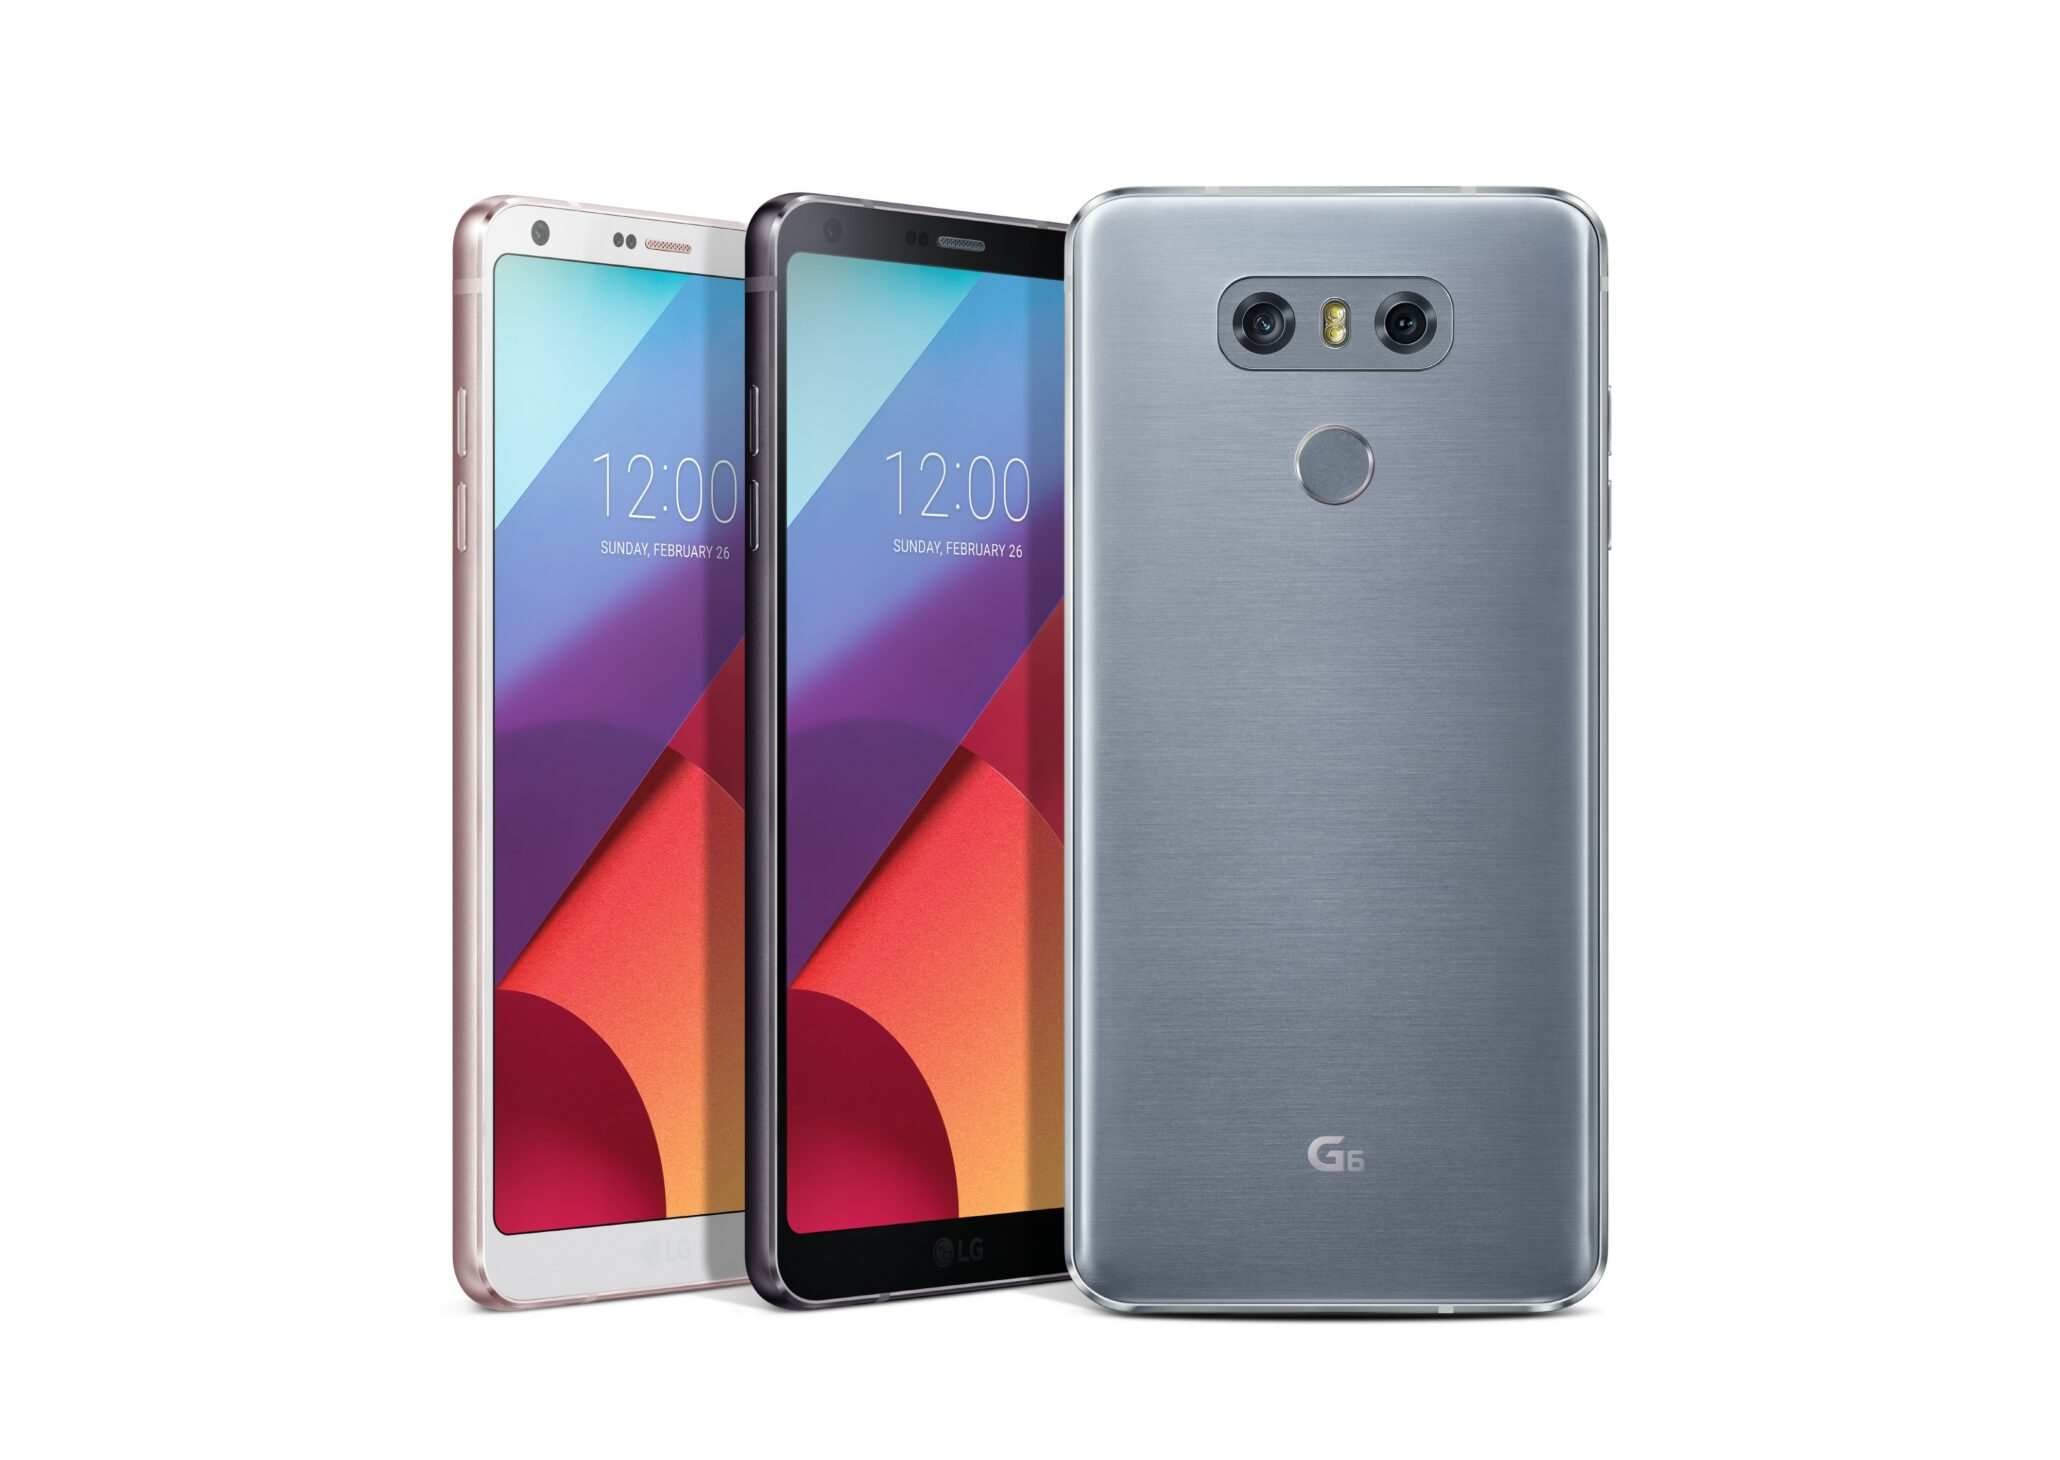 LG G6 Is The Newly Released Flagship From 2017 And It Certainly A Breath Of Fresh Air When You Compare Its Design With Companys Previous Flagships